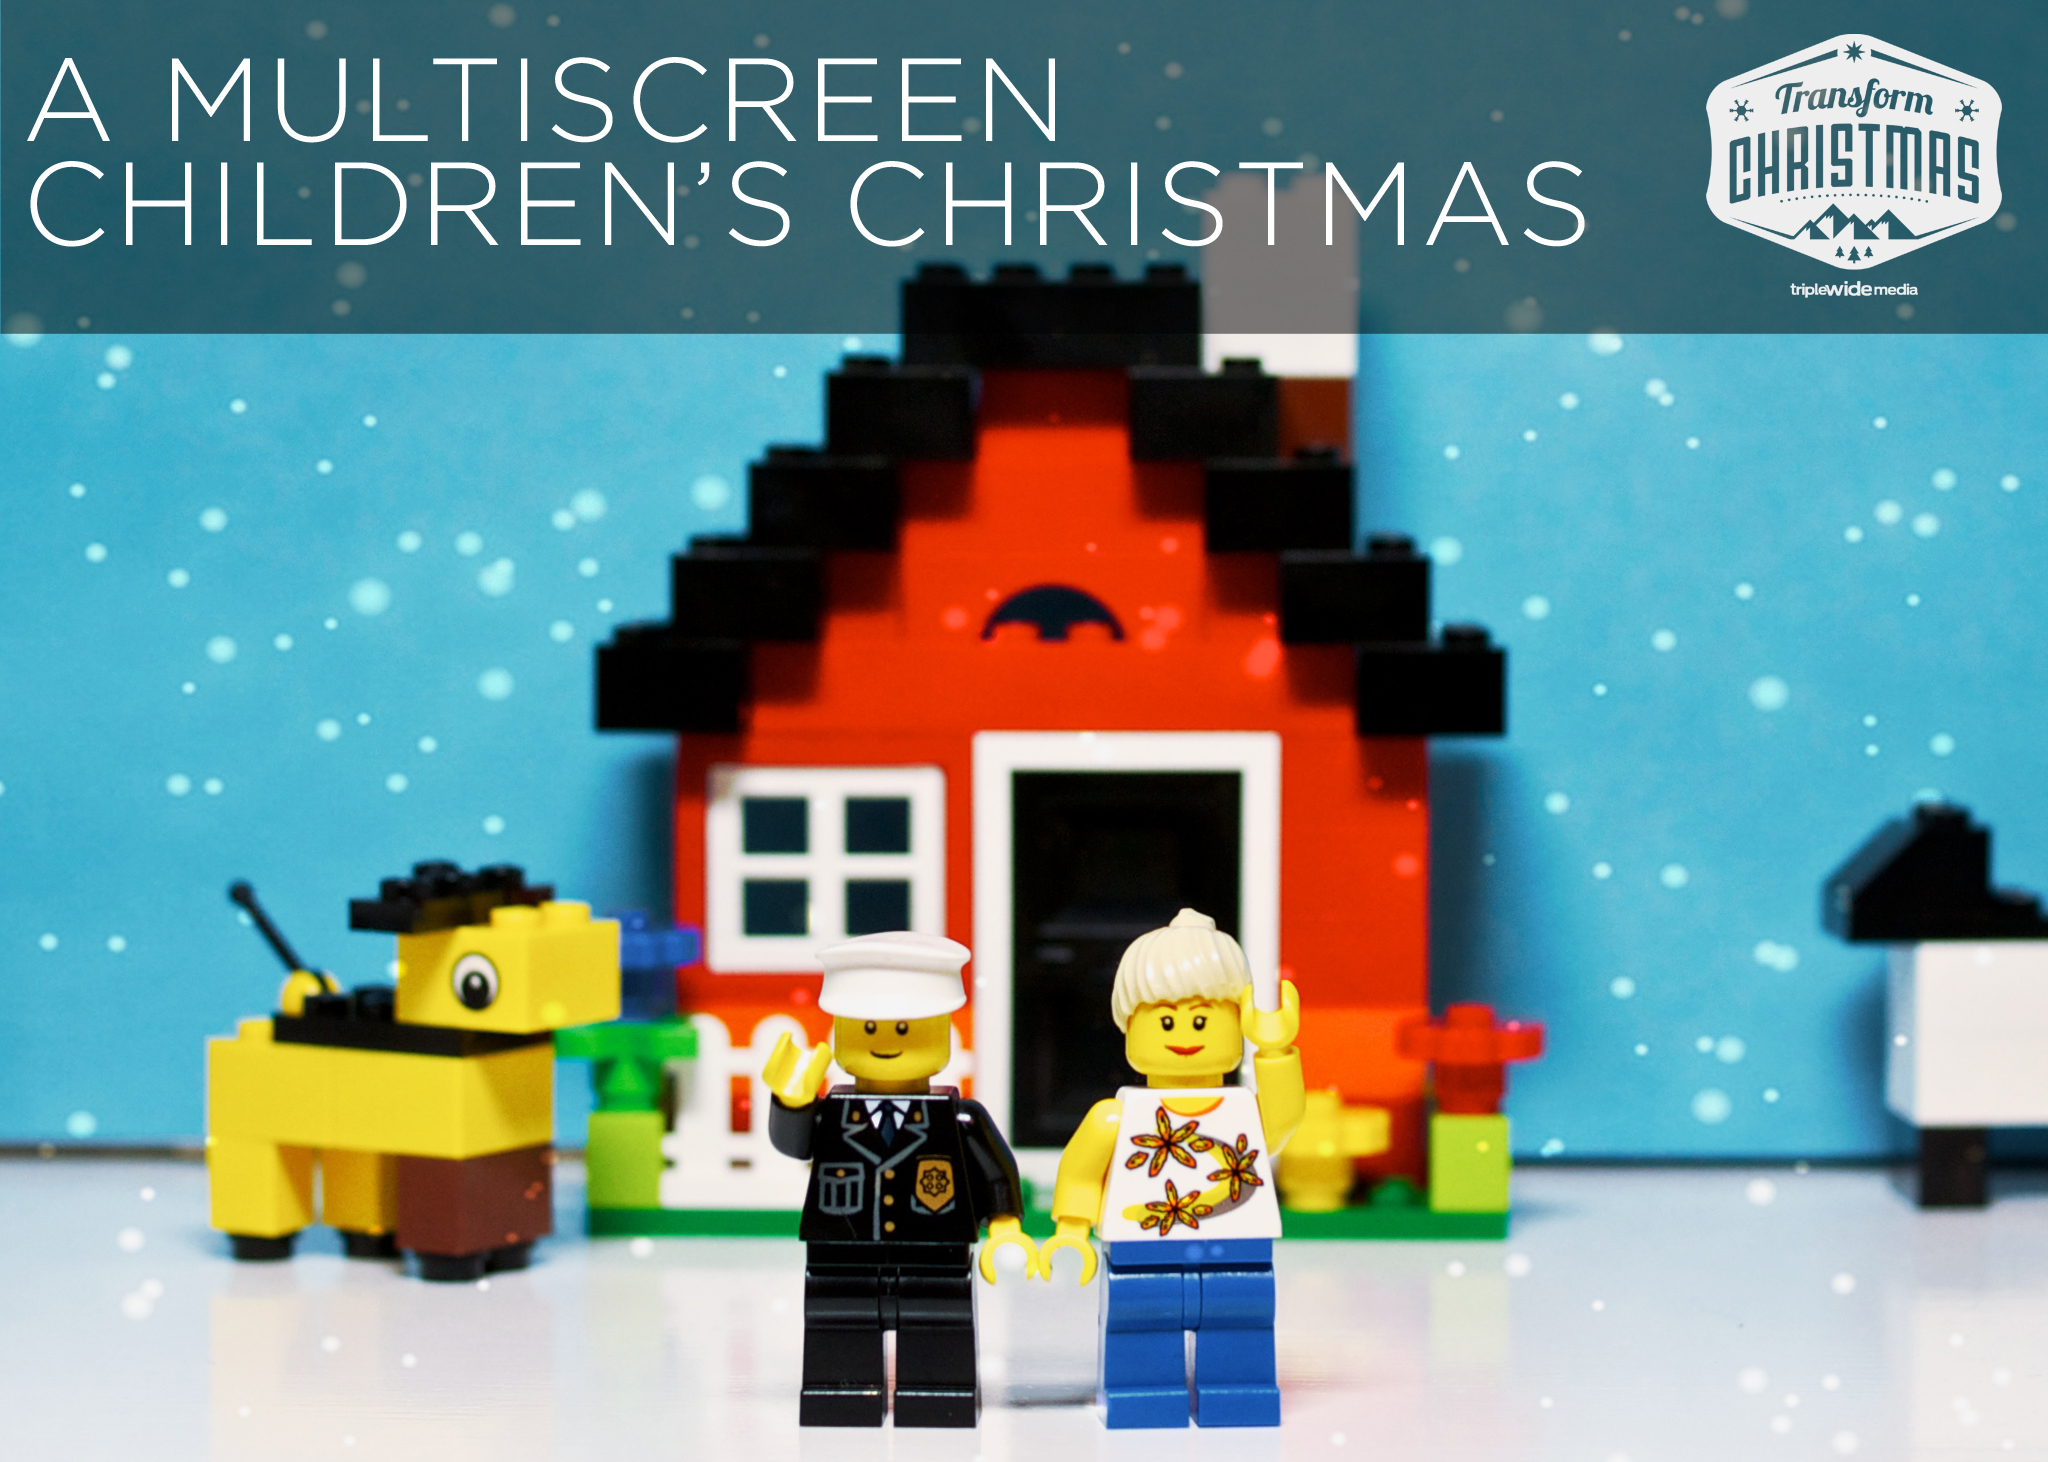 A Multiscreen Childrens Christmas   TripleWide Media